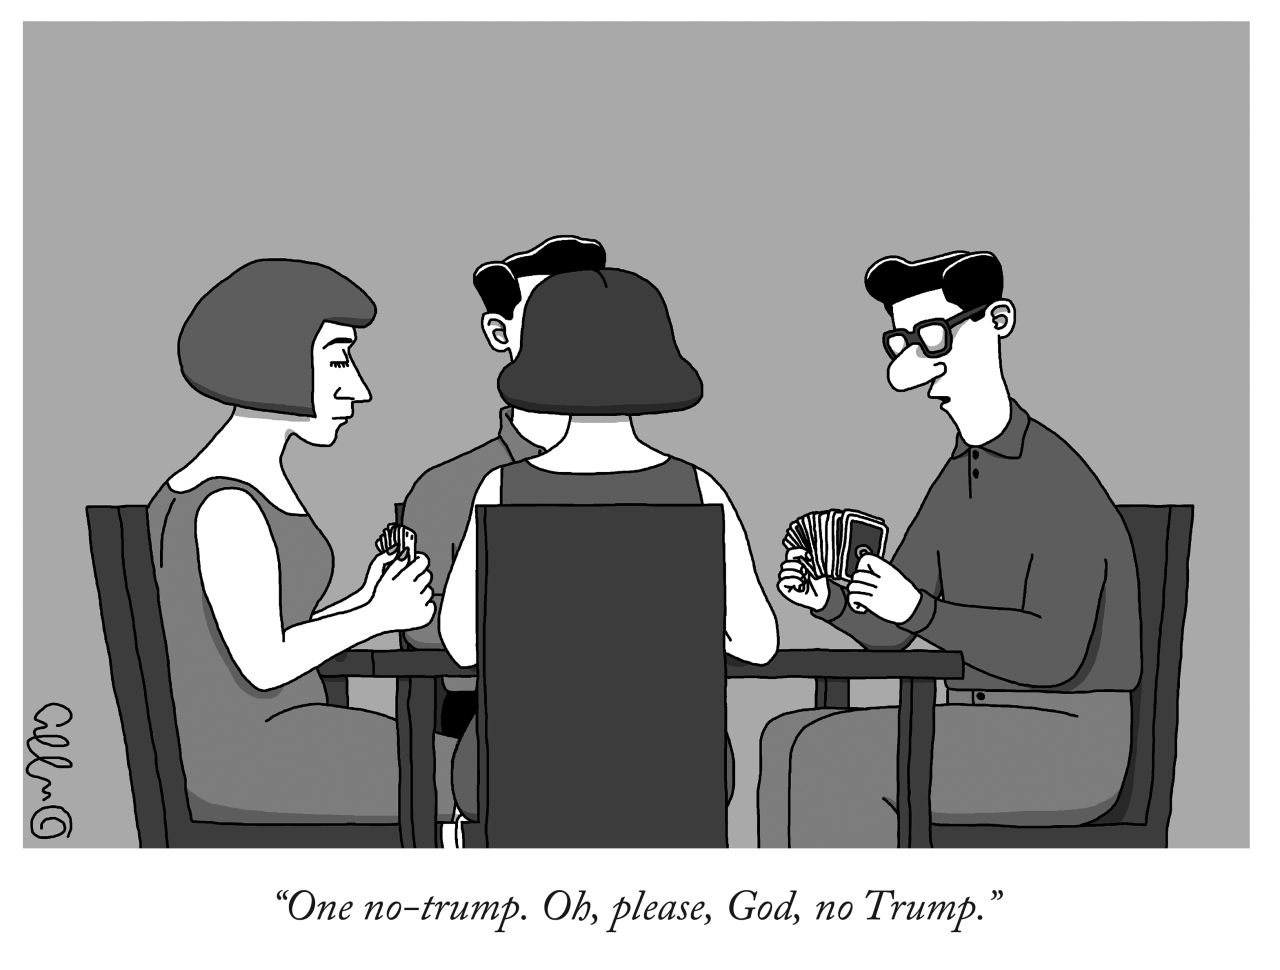 The New Yorker Cartoon Editor Goes Full Donald With Trump ...